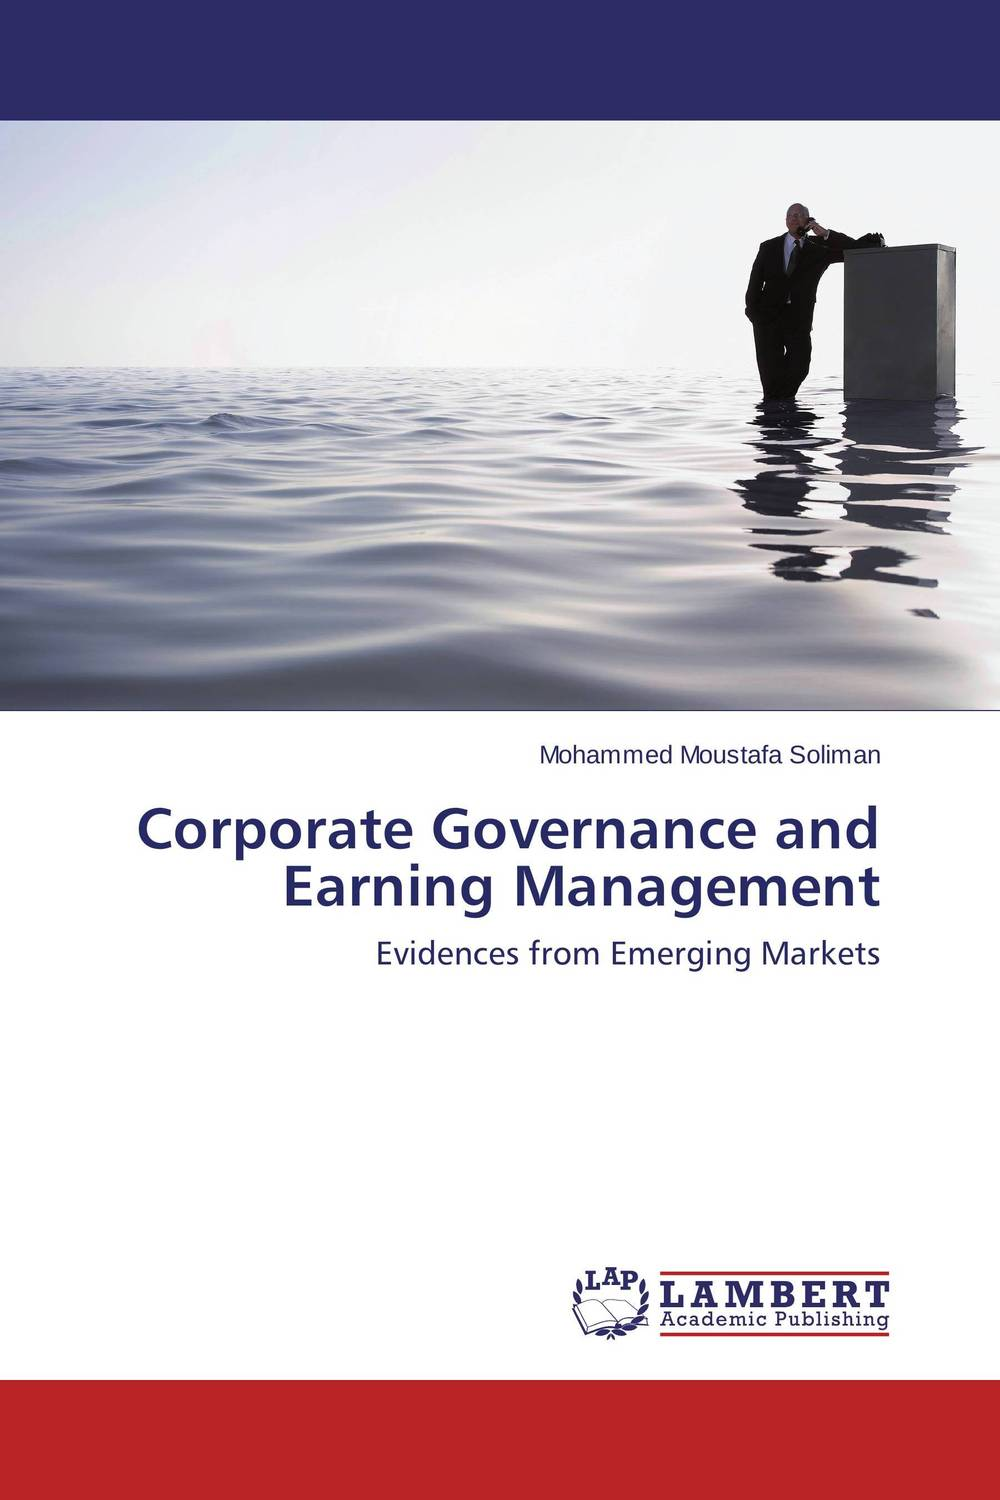 Corporate Governance and Earning Management moorad choudhry fixed income markets management trading and hedging